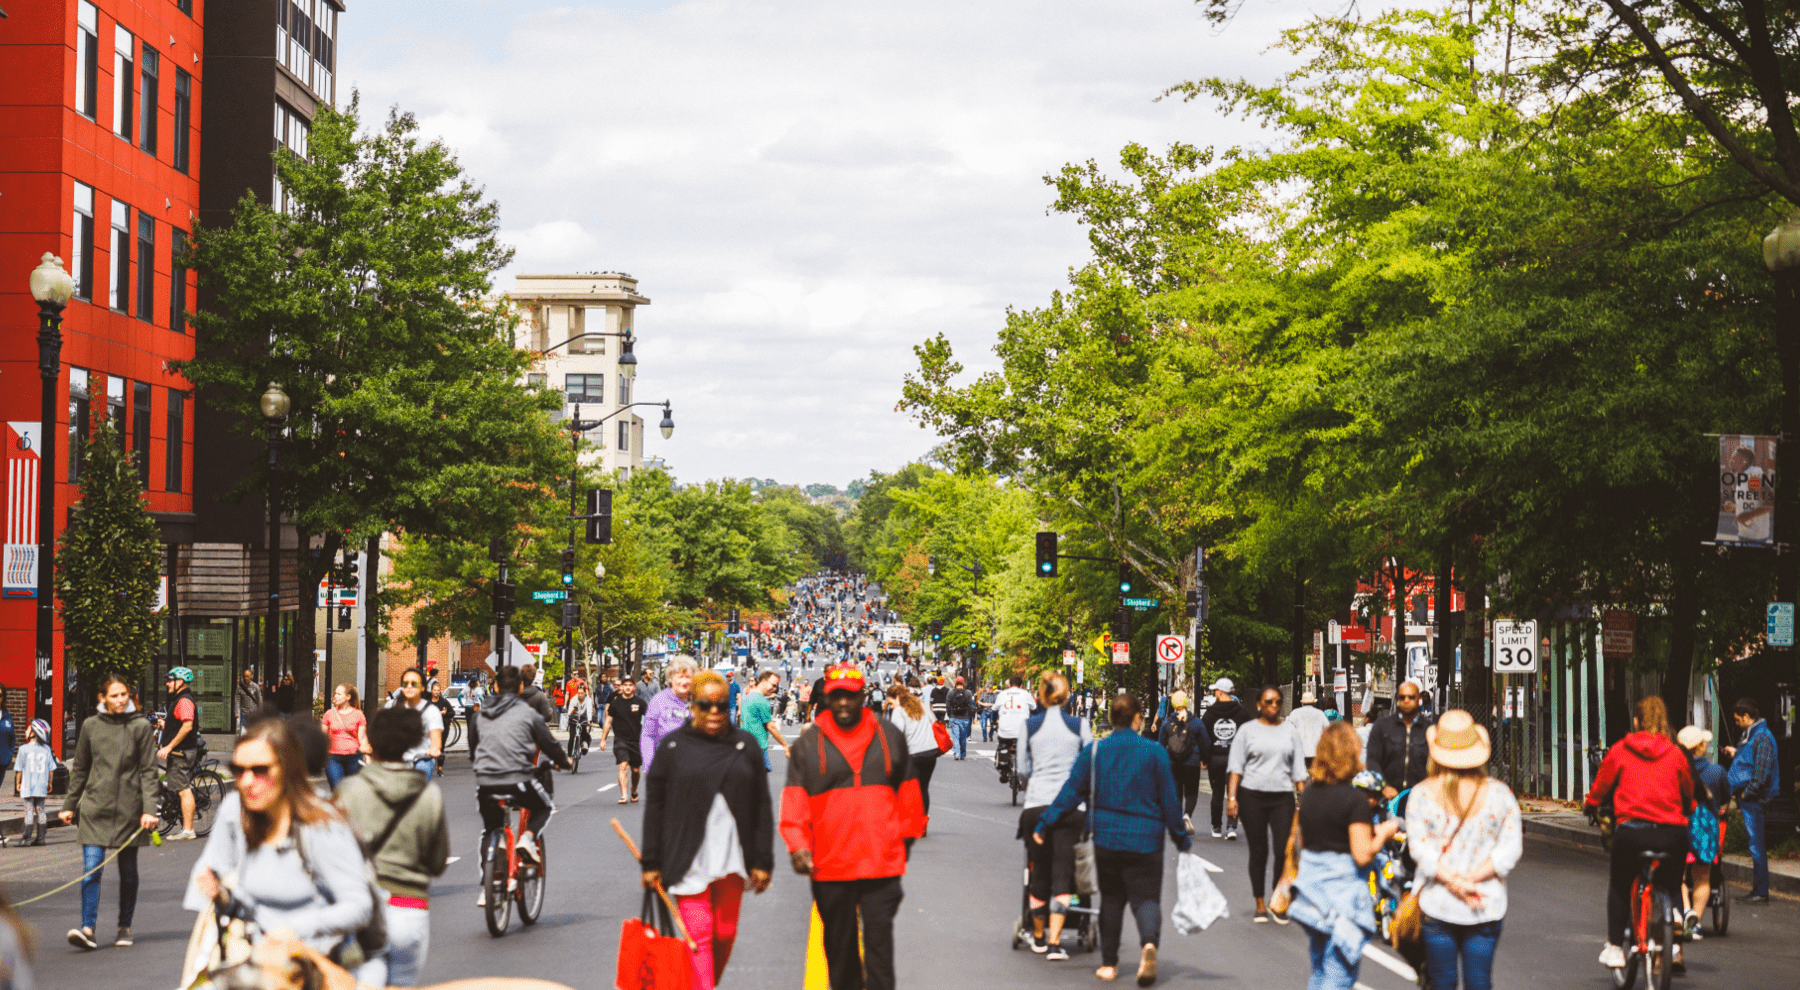 People walking along the open streets of DC